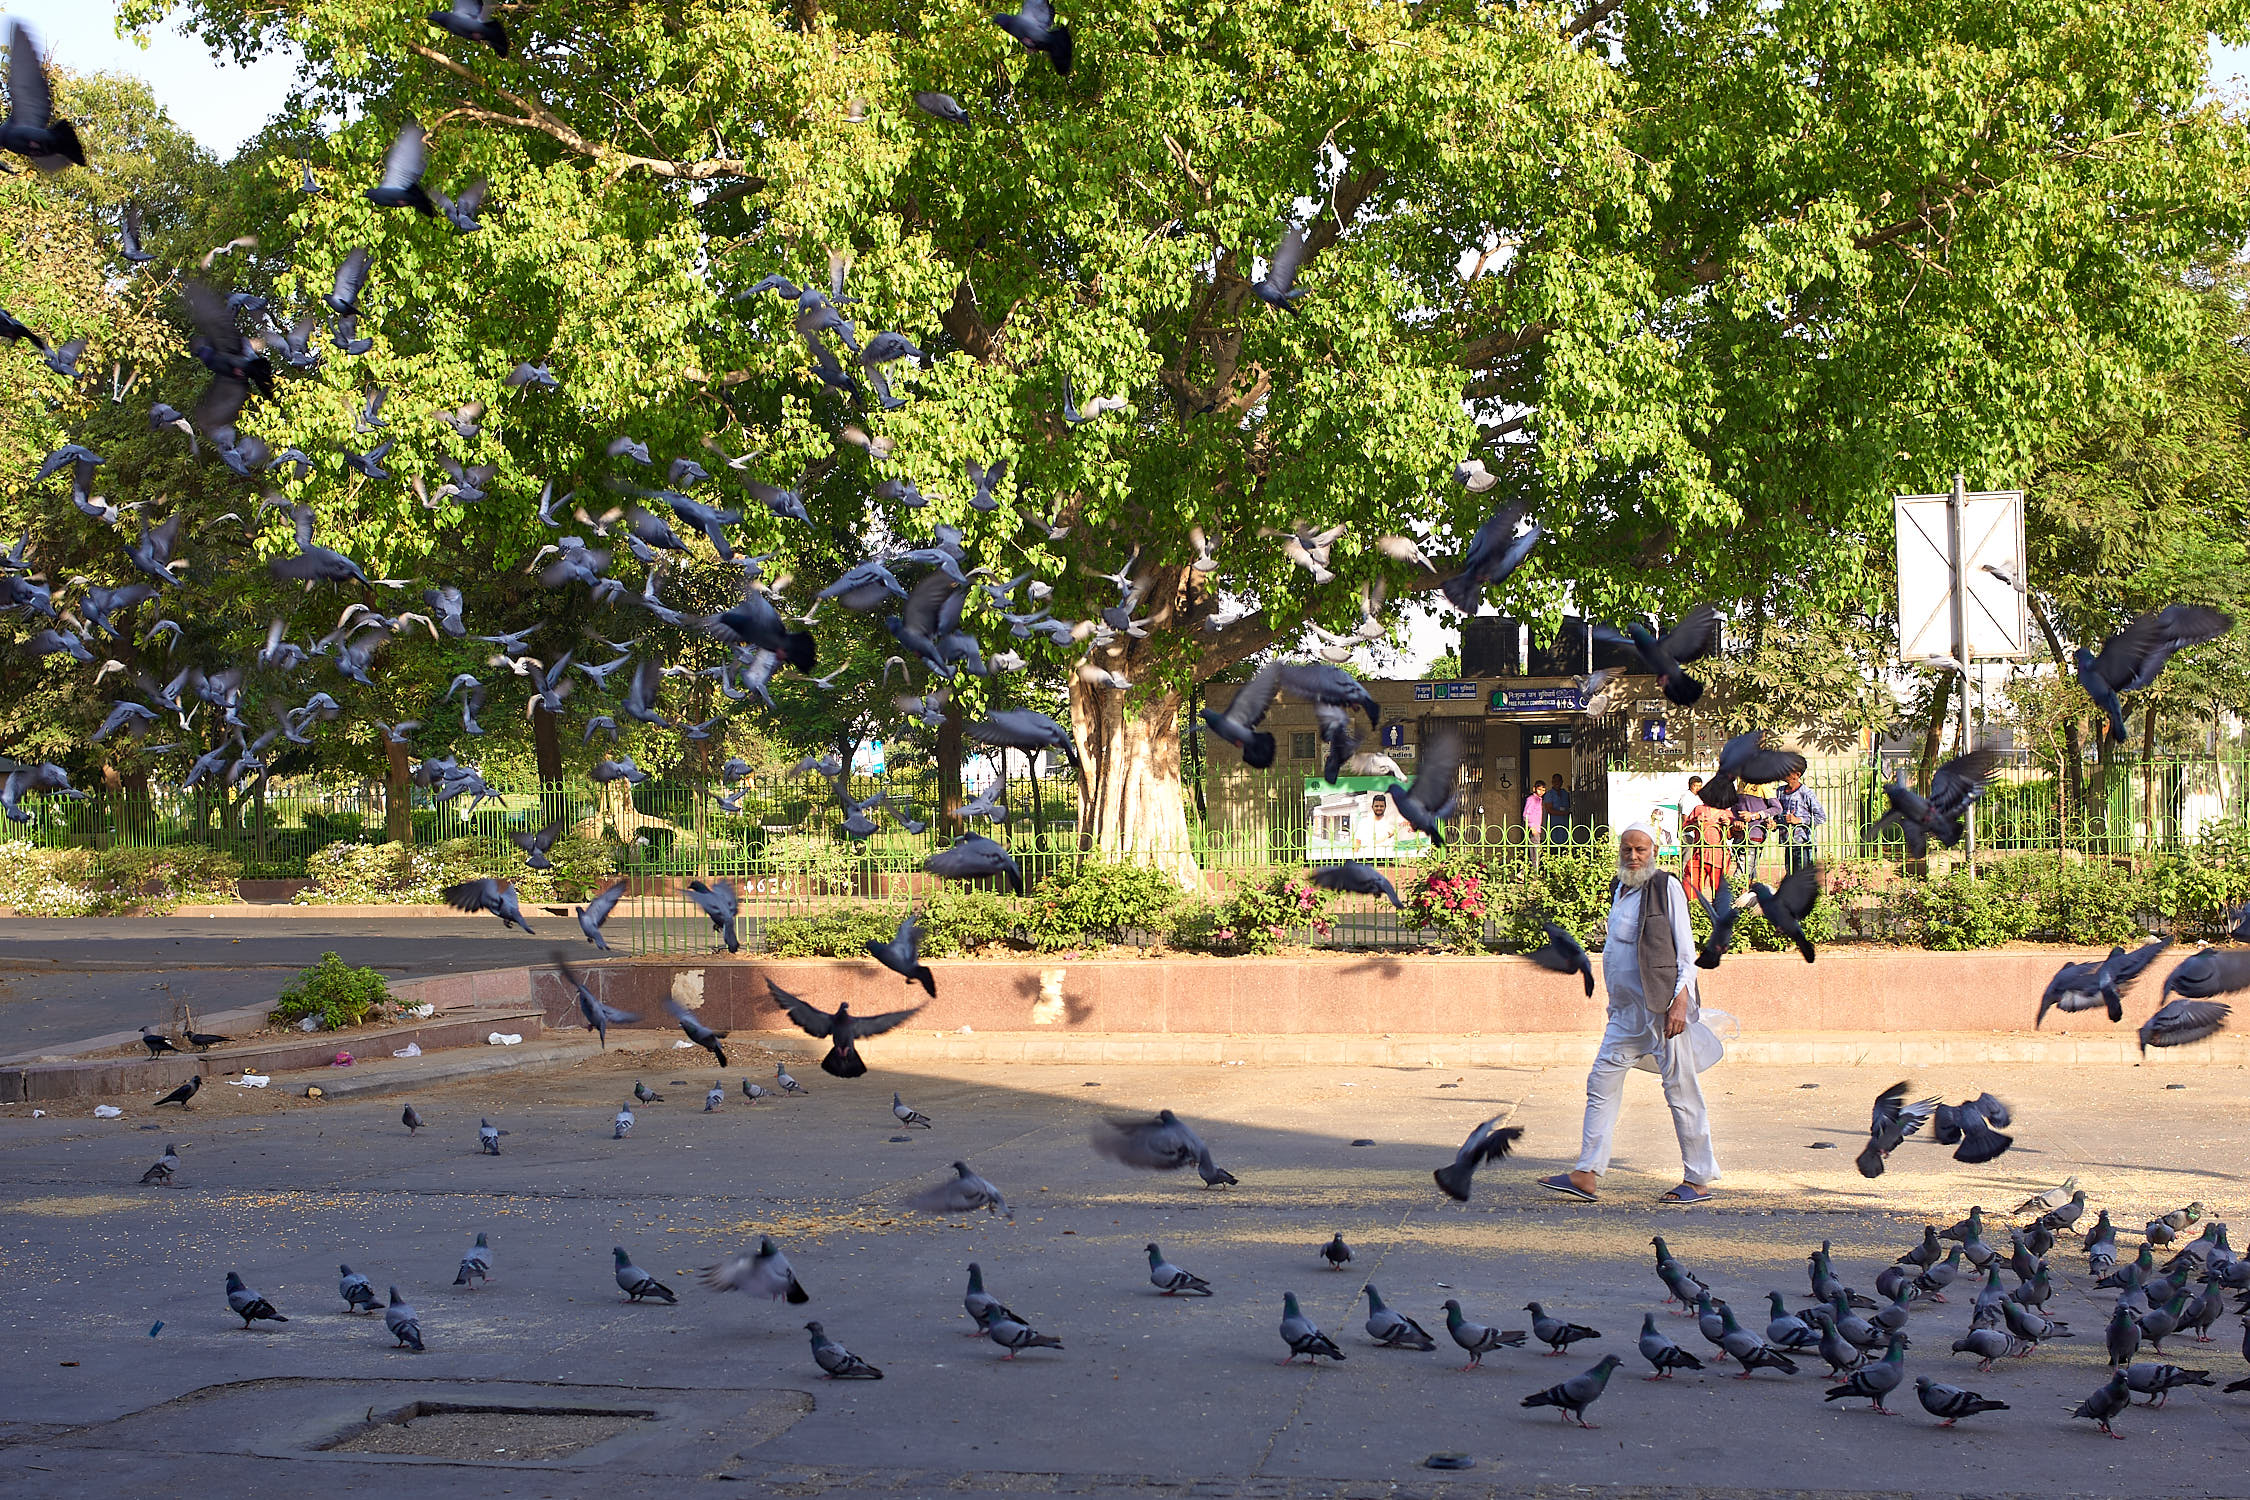 Pigeons with a man, CP area of Delhi